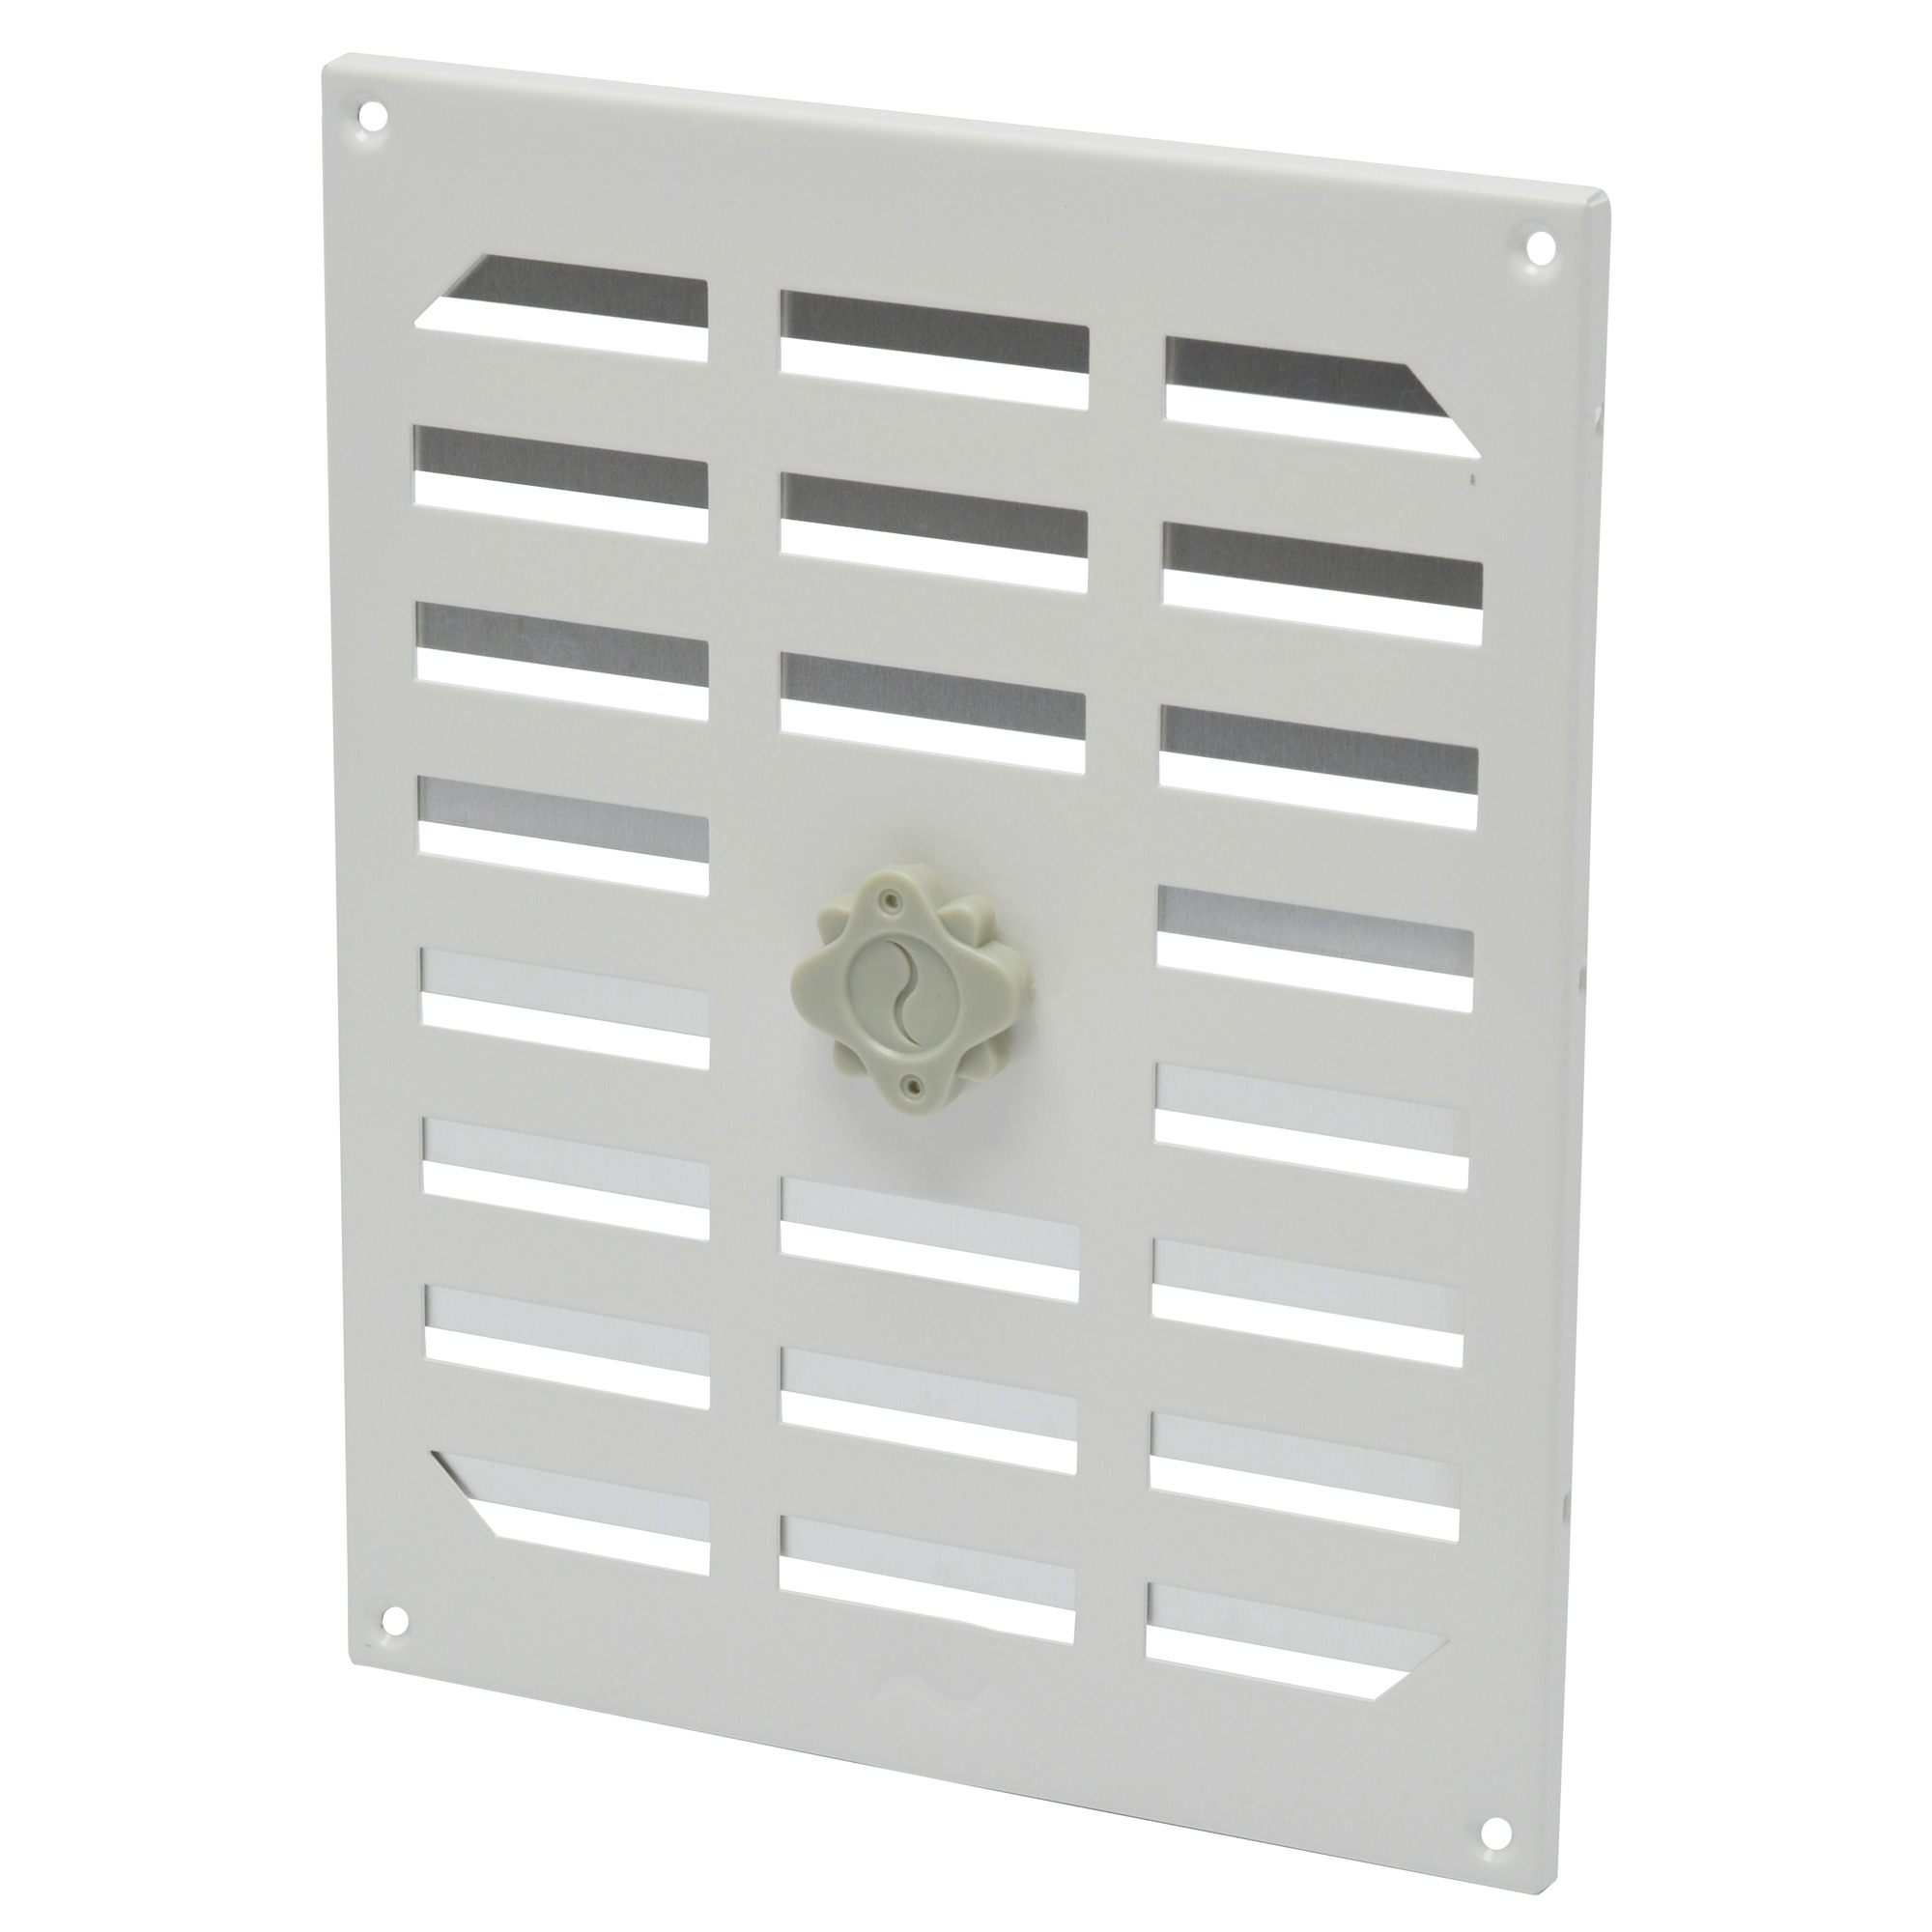 Grille d 39 a ration r glable ivc air aluminium 245x195 mm - Grille aeration reglable ...